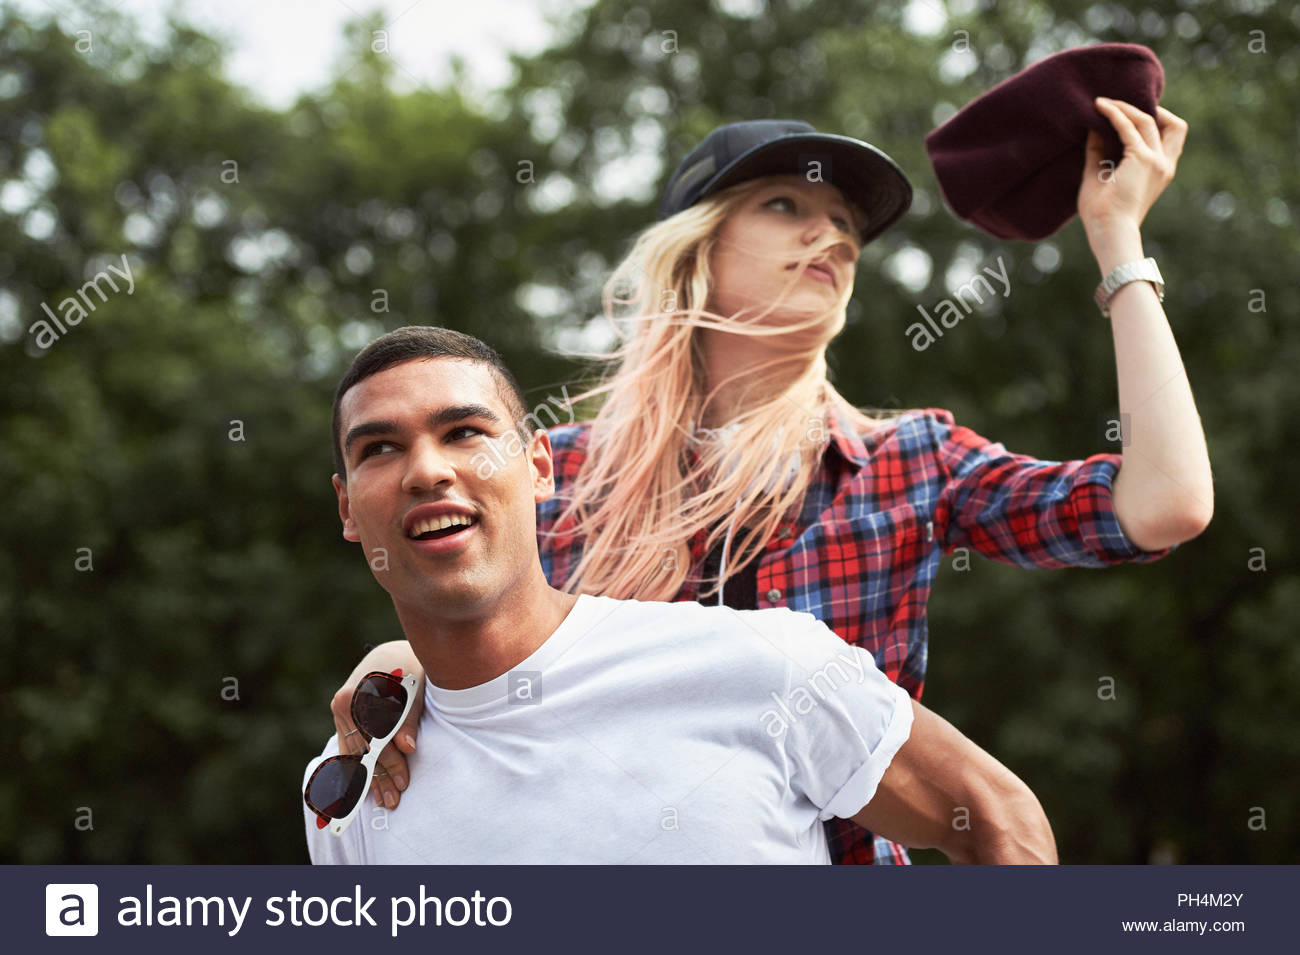 Teenage boy giving teenage girl piggyback ride - Stock Image